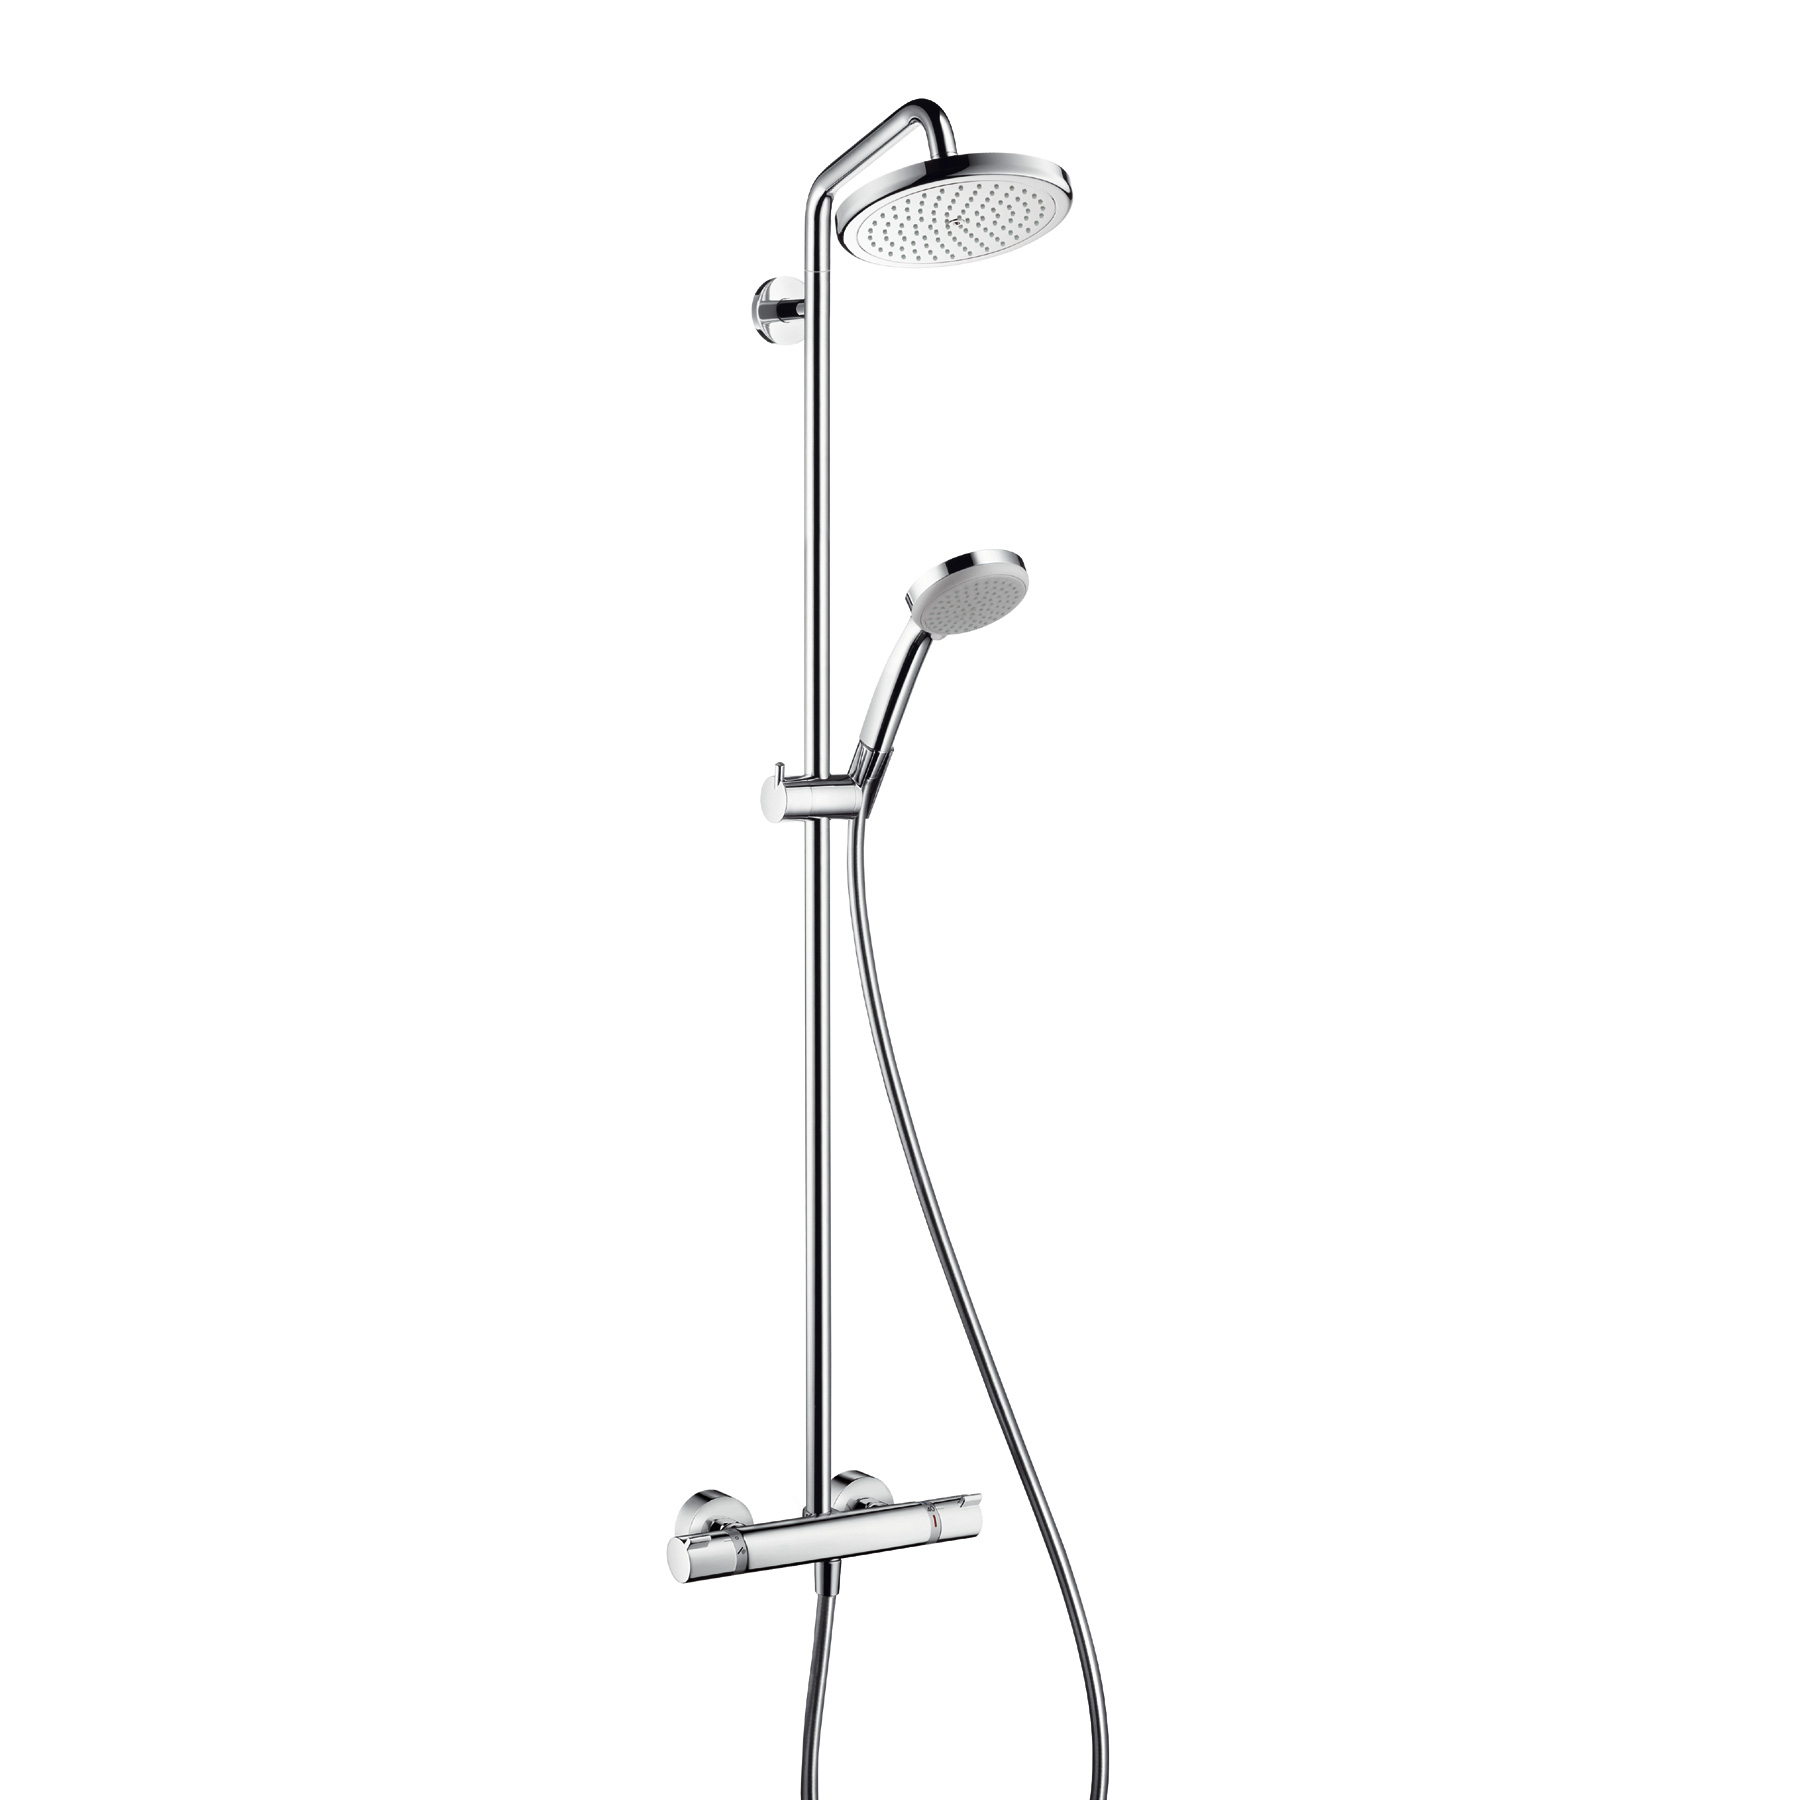 hansgrohe croma 220 air 1jet showerpipe 27185000. Black Bedroom Furniture Sets. Home Design Ideas